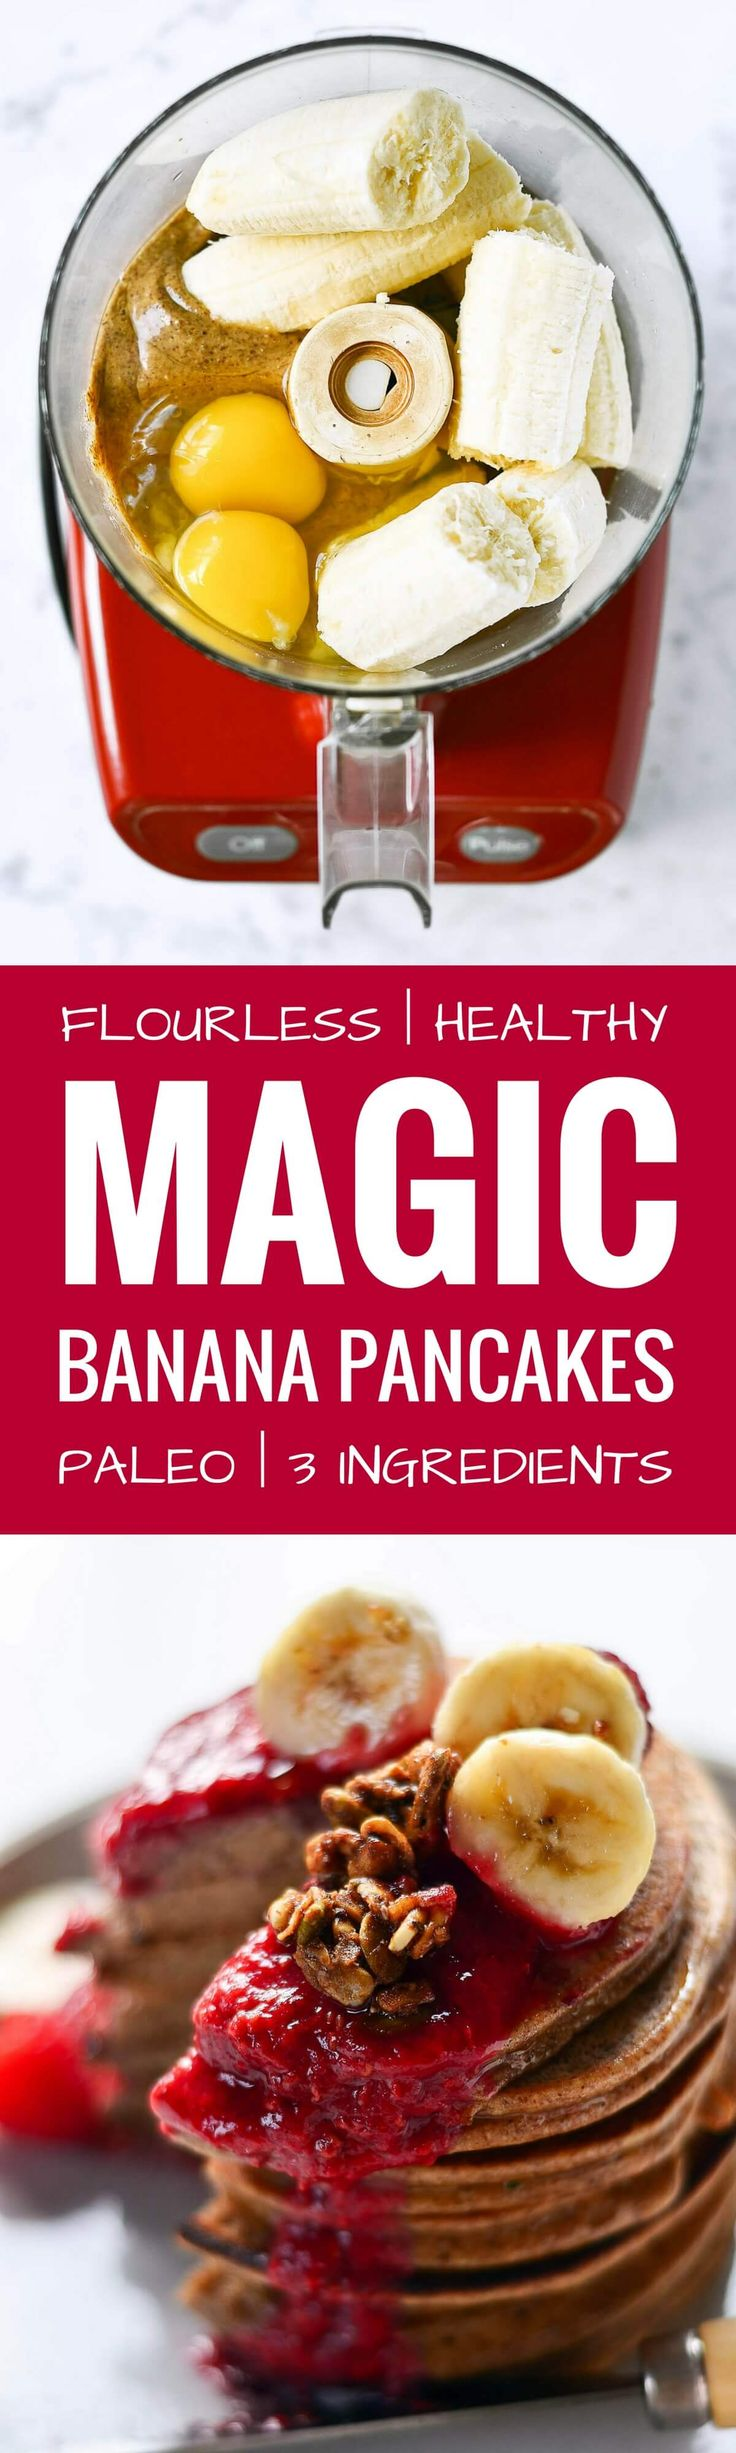 Magic paleo blender banana pancakes. best paleo pancakes recipe. Light, soft, and fluffy! 3 ingredients. Easy paleo pancake recipe. Best healthy banana pancakes recipe. Flourless banana pancakes. Pancakes from scratch. Pancakes ideas. Healthy fluffy banana pancakes. Paleo almond pancakes. 2 medium soft bananas  2 small/medium eggs  3/4 cup almond butter